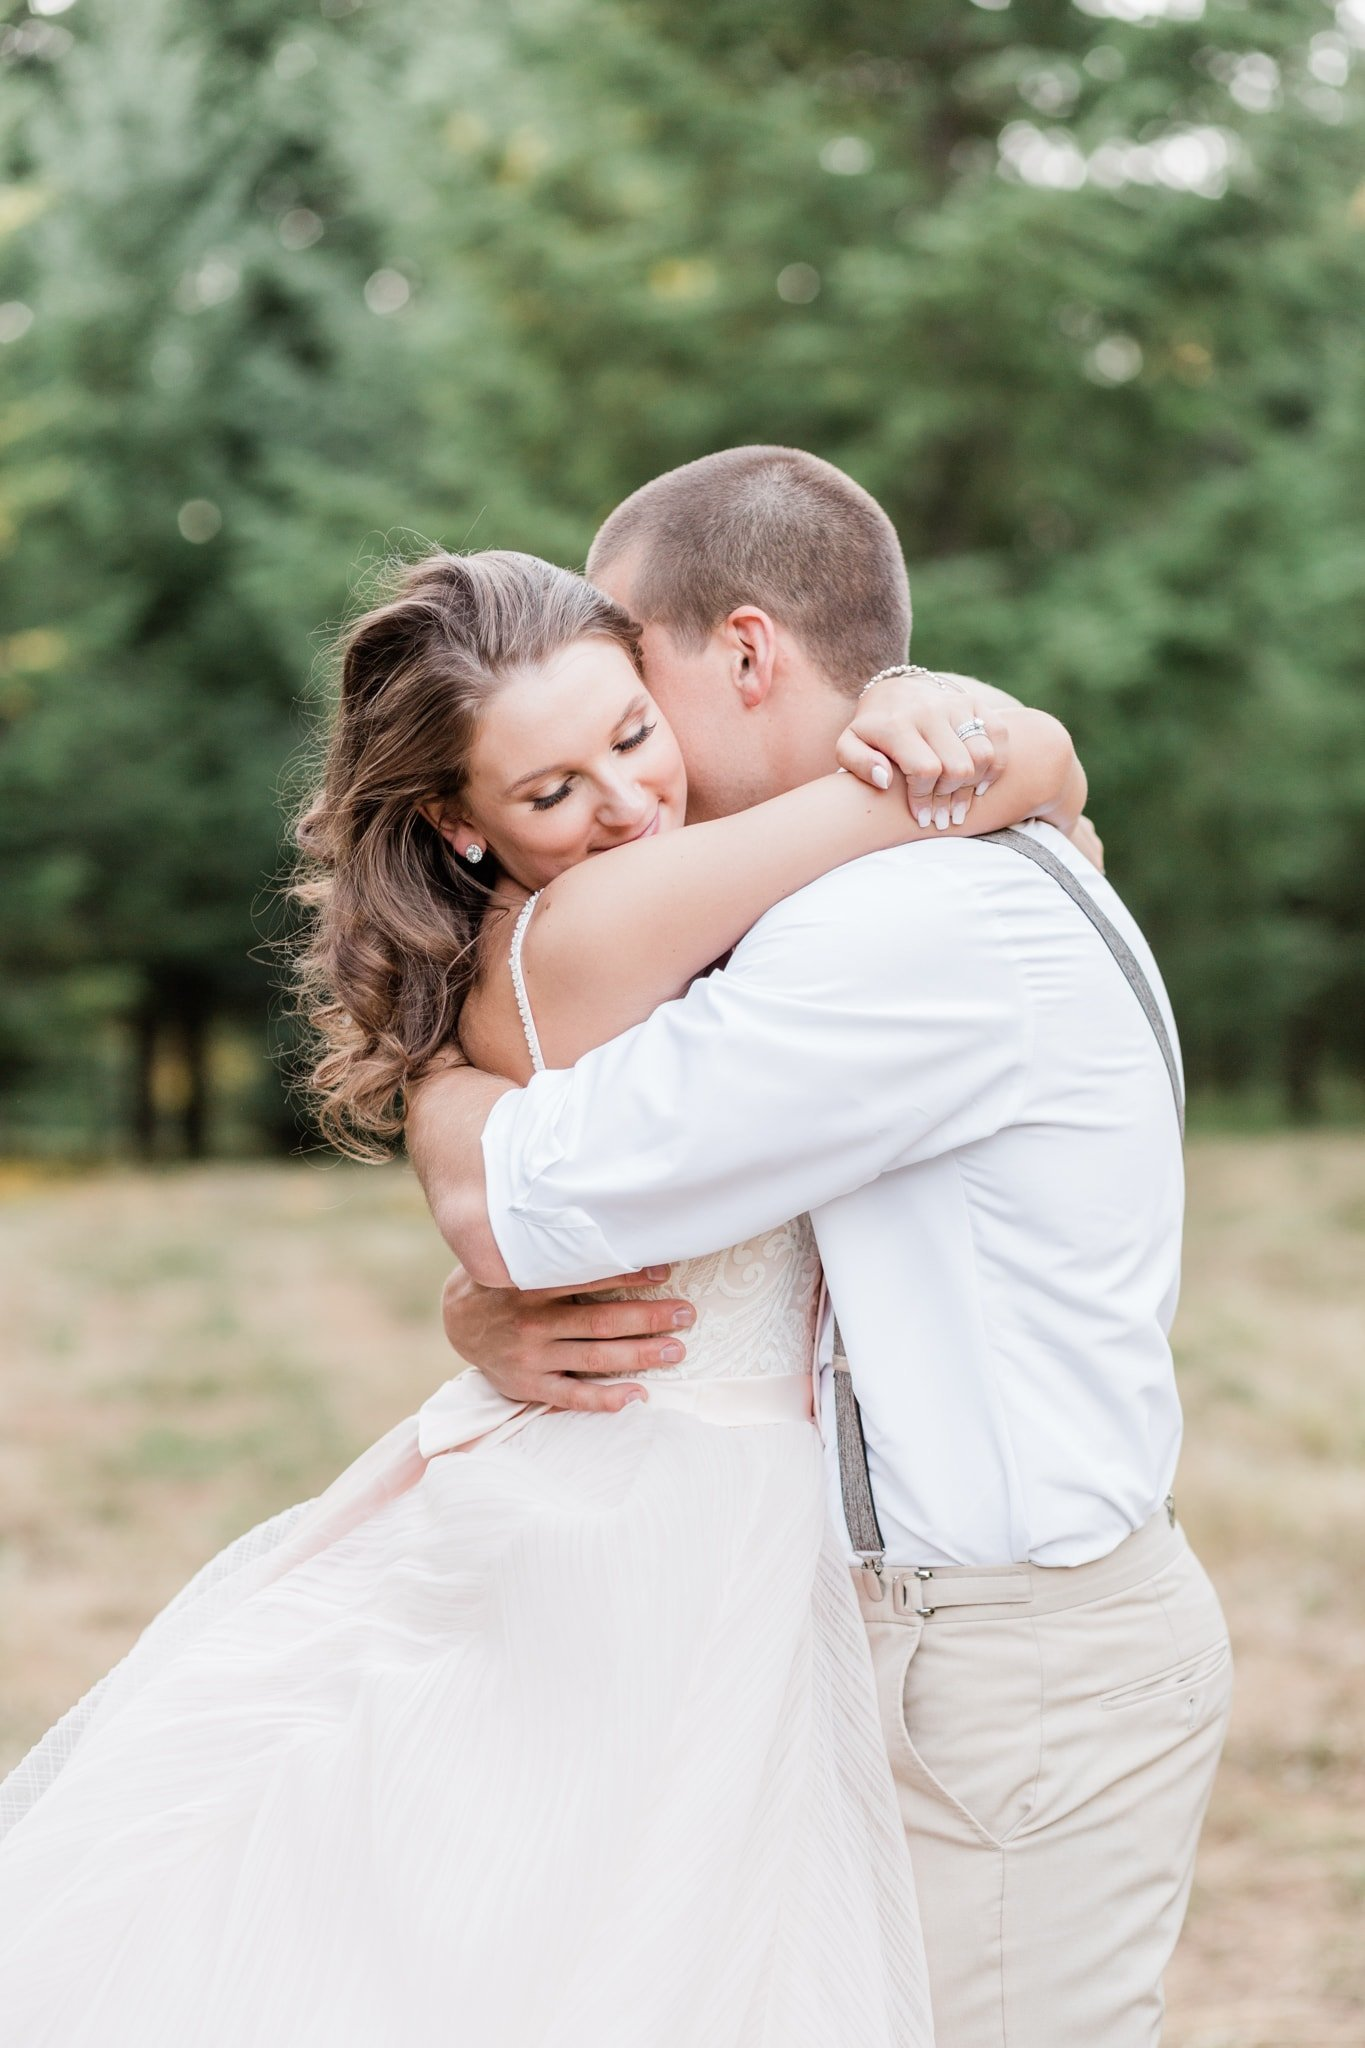 Bride and Groom hug during sunset photos